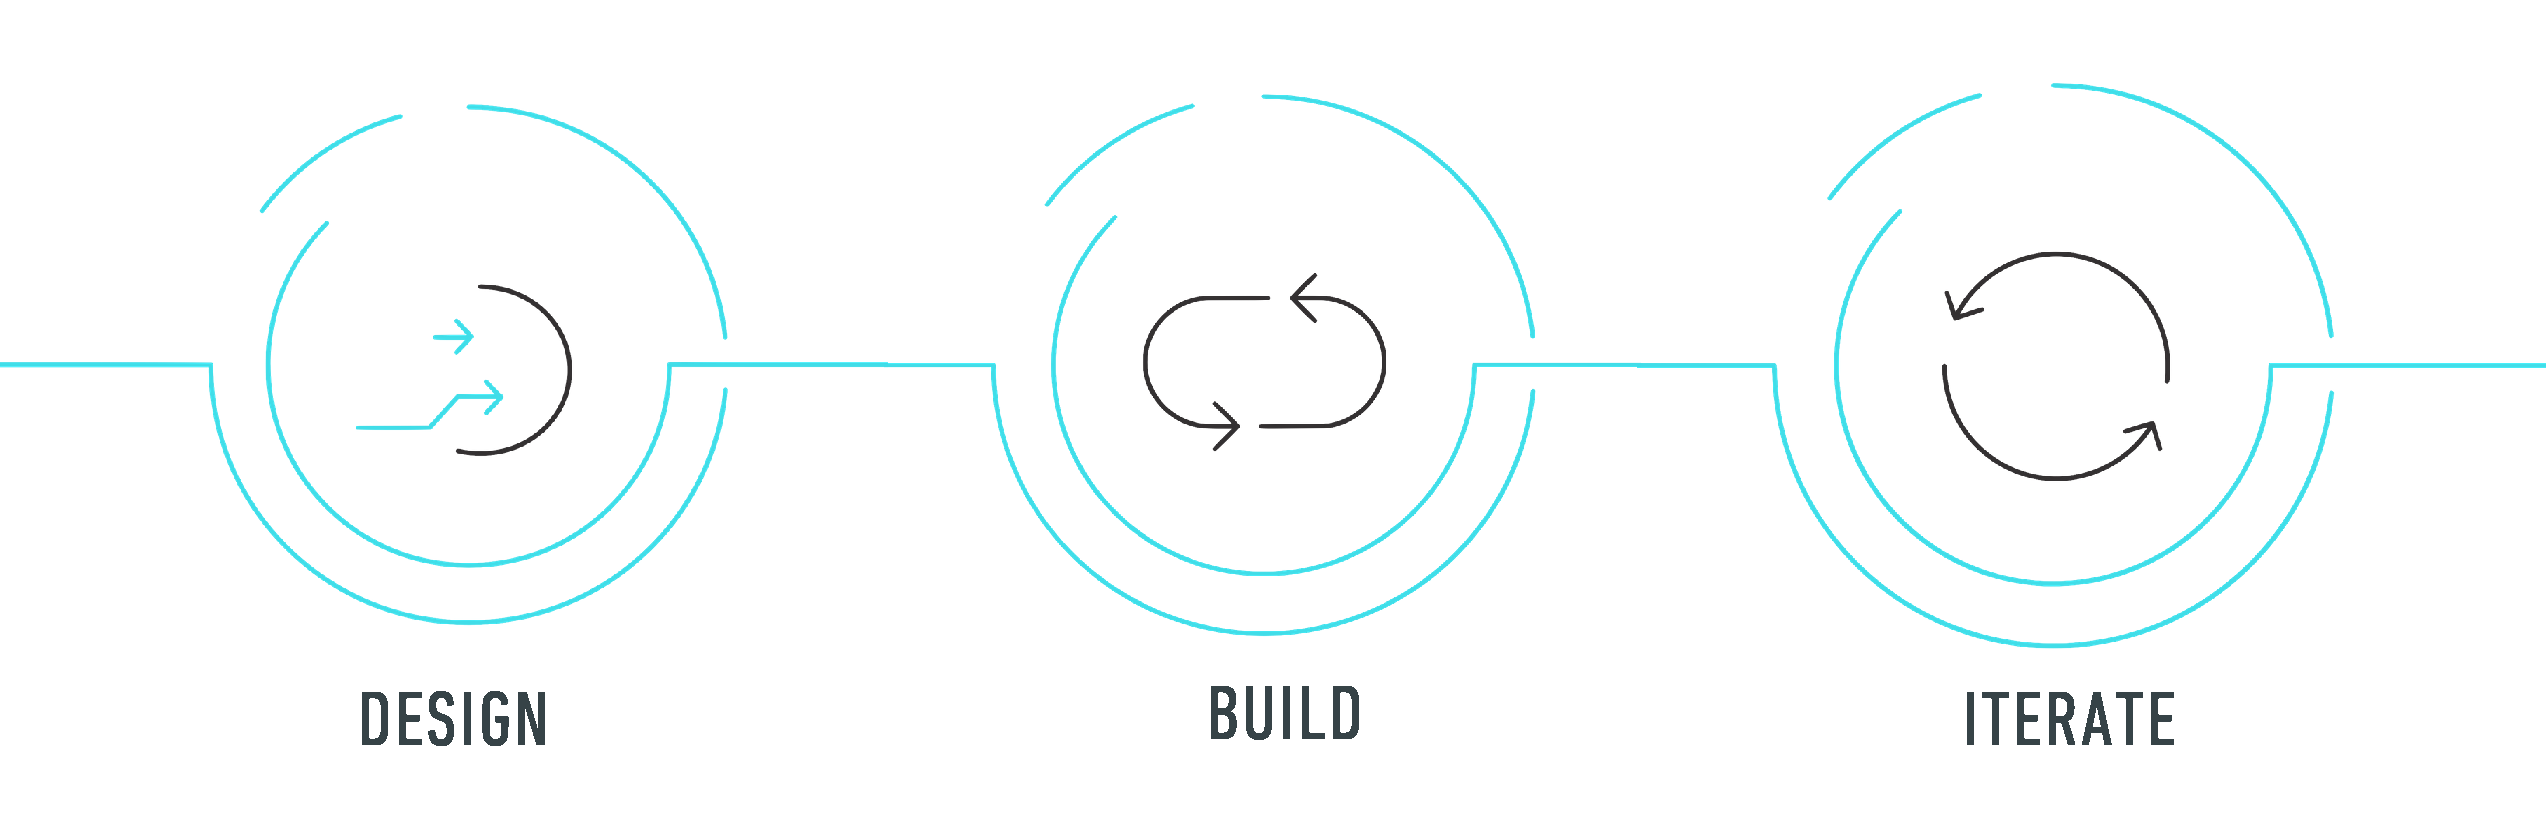 Design, build, iterate faster with Tempo